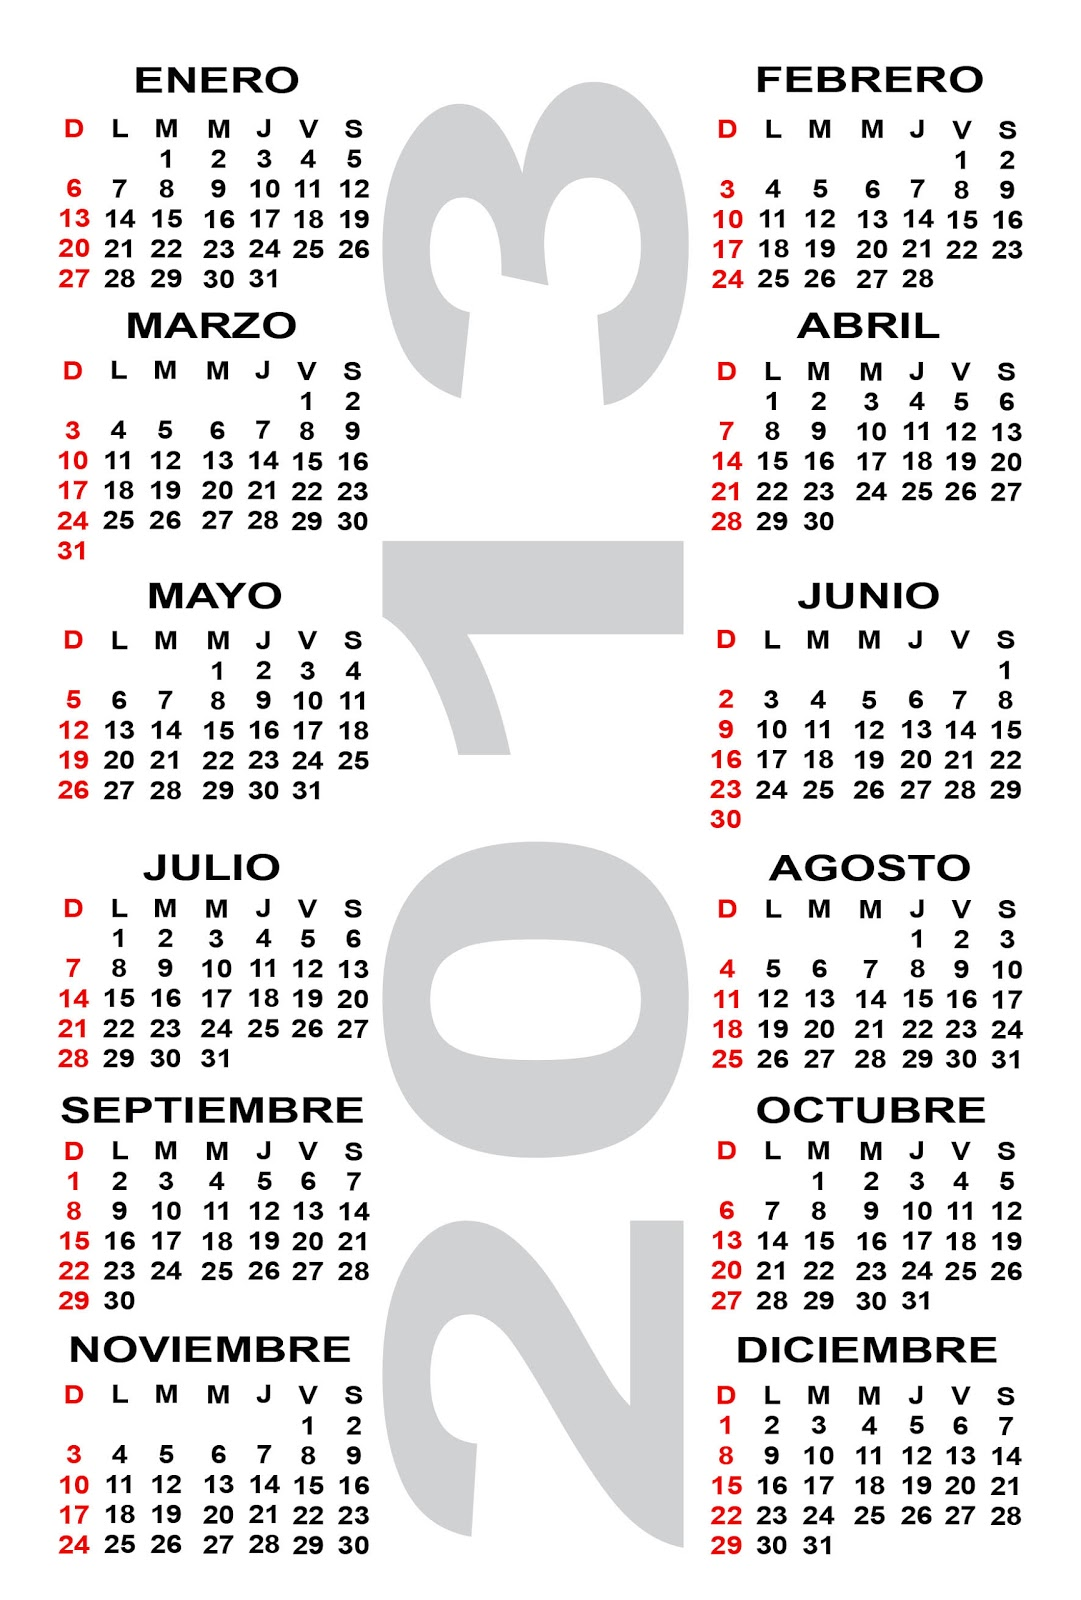 Free 2013 Calendar Images and 2013 Calendar Templates